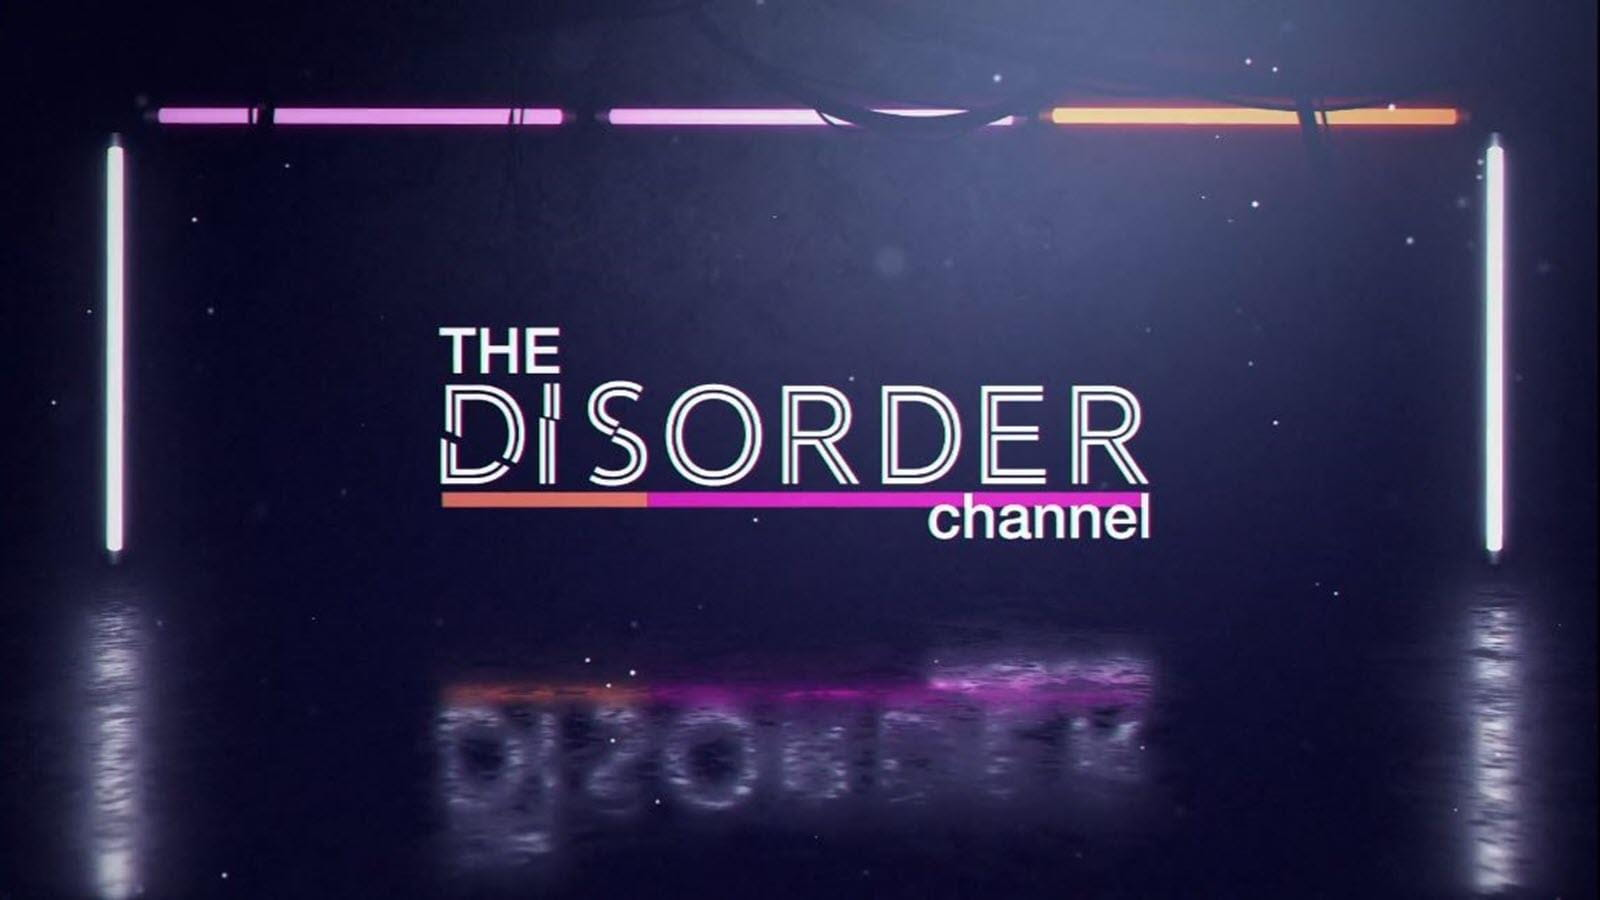 lighted logo for THE DISORDER channel on black background